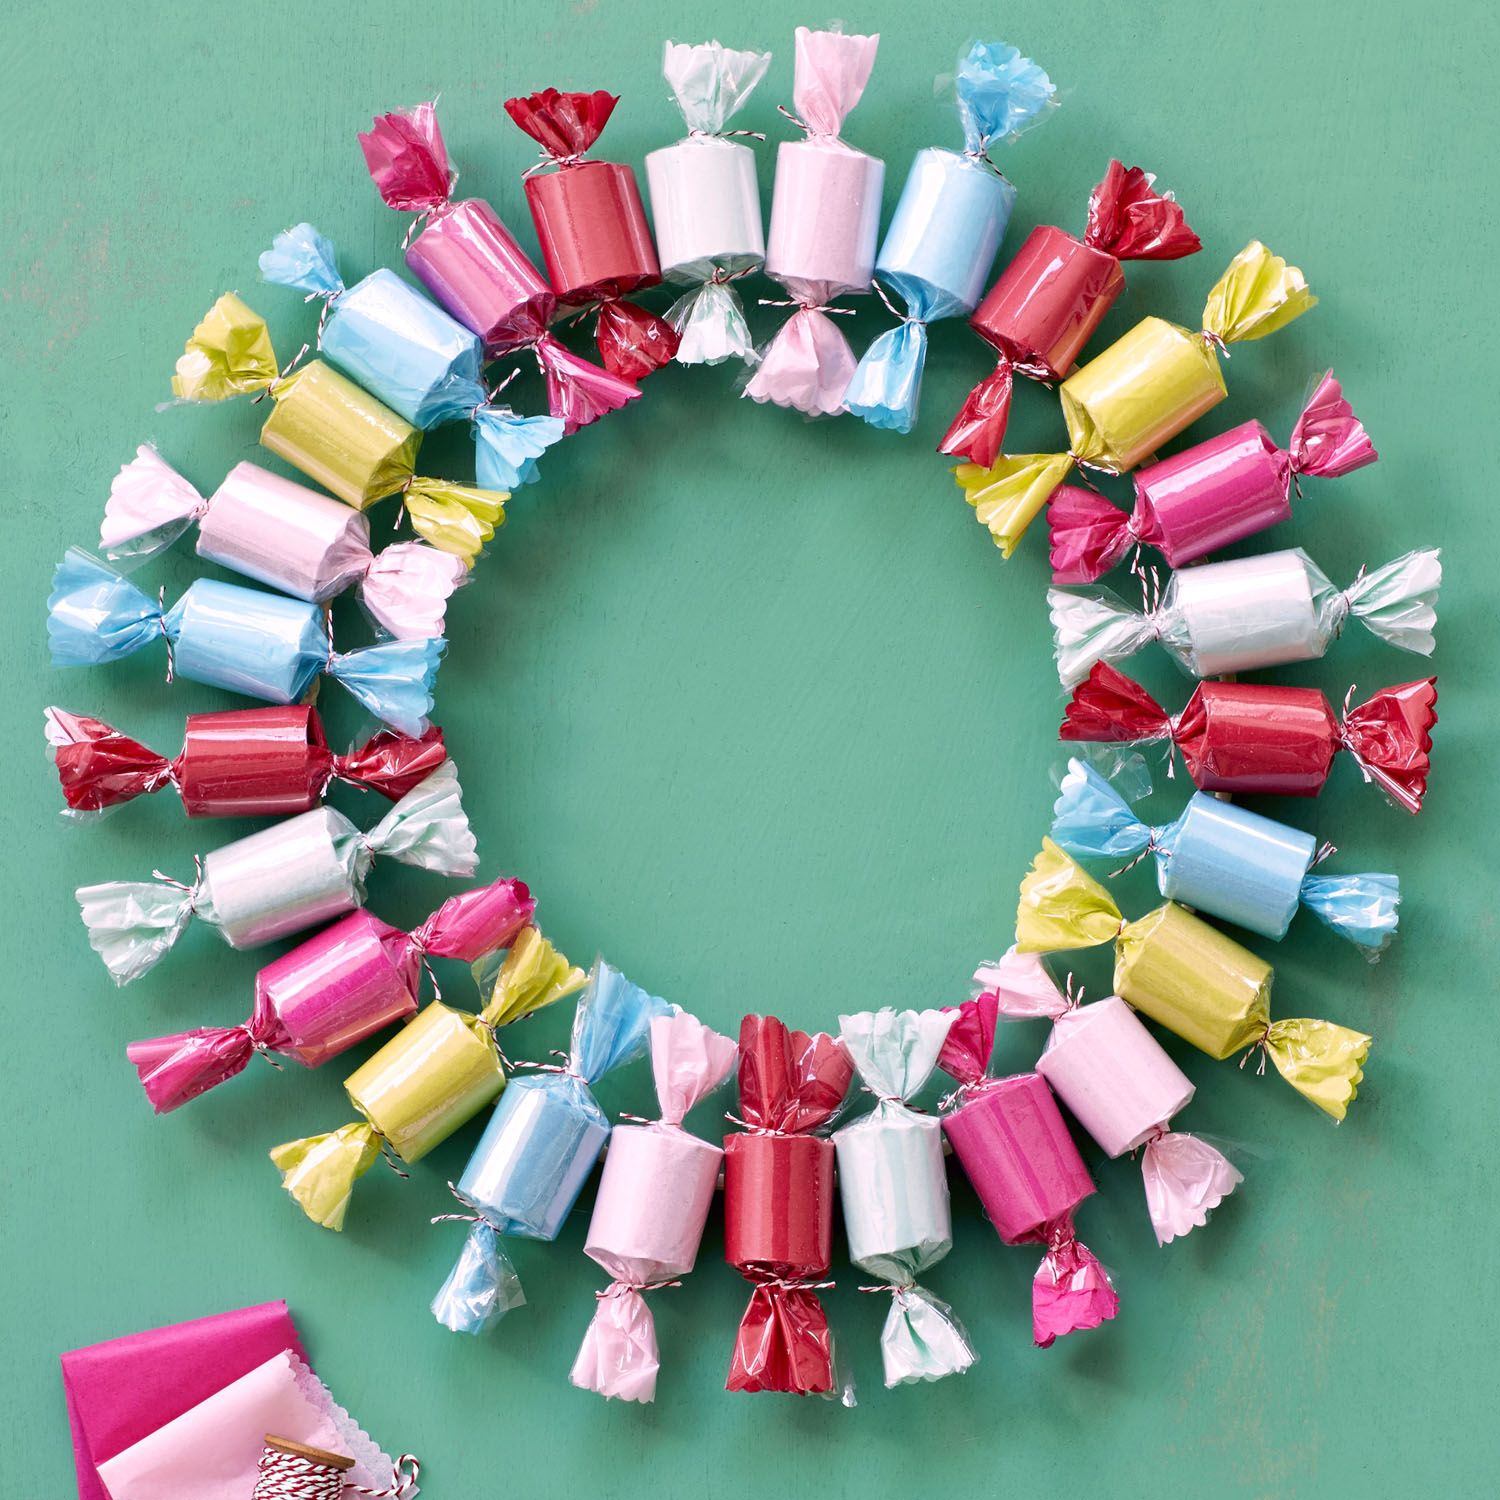 Paper Christmas Wreath Designs.60 Diy Christmas Wreaths How To Make A Holiday Wreath Craft